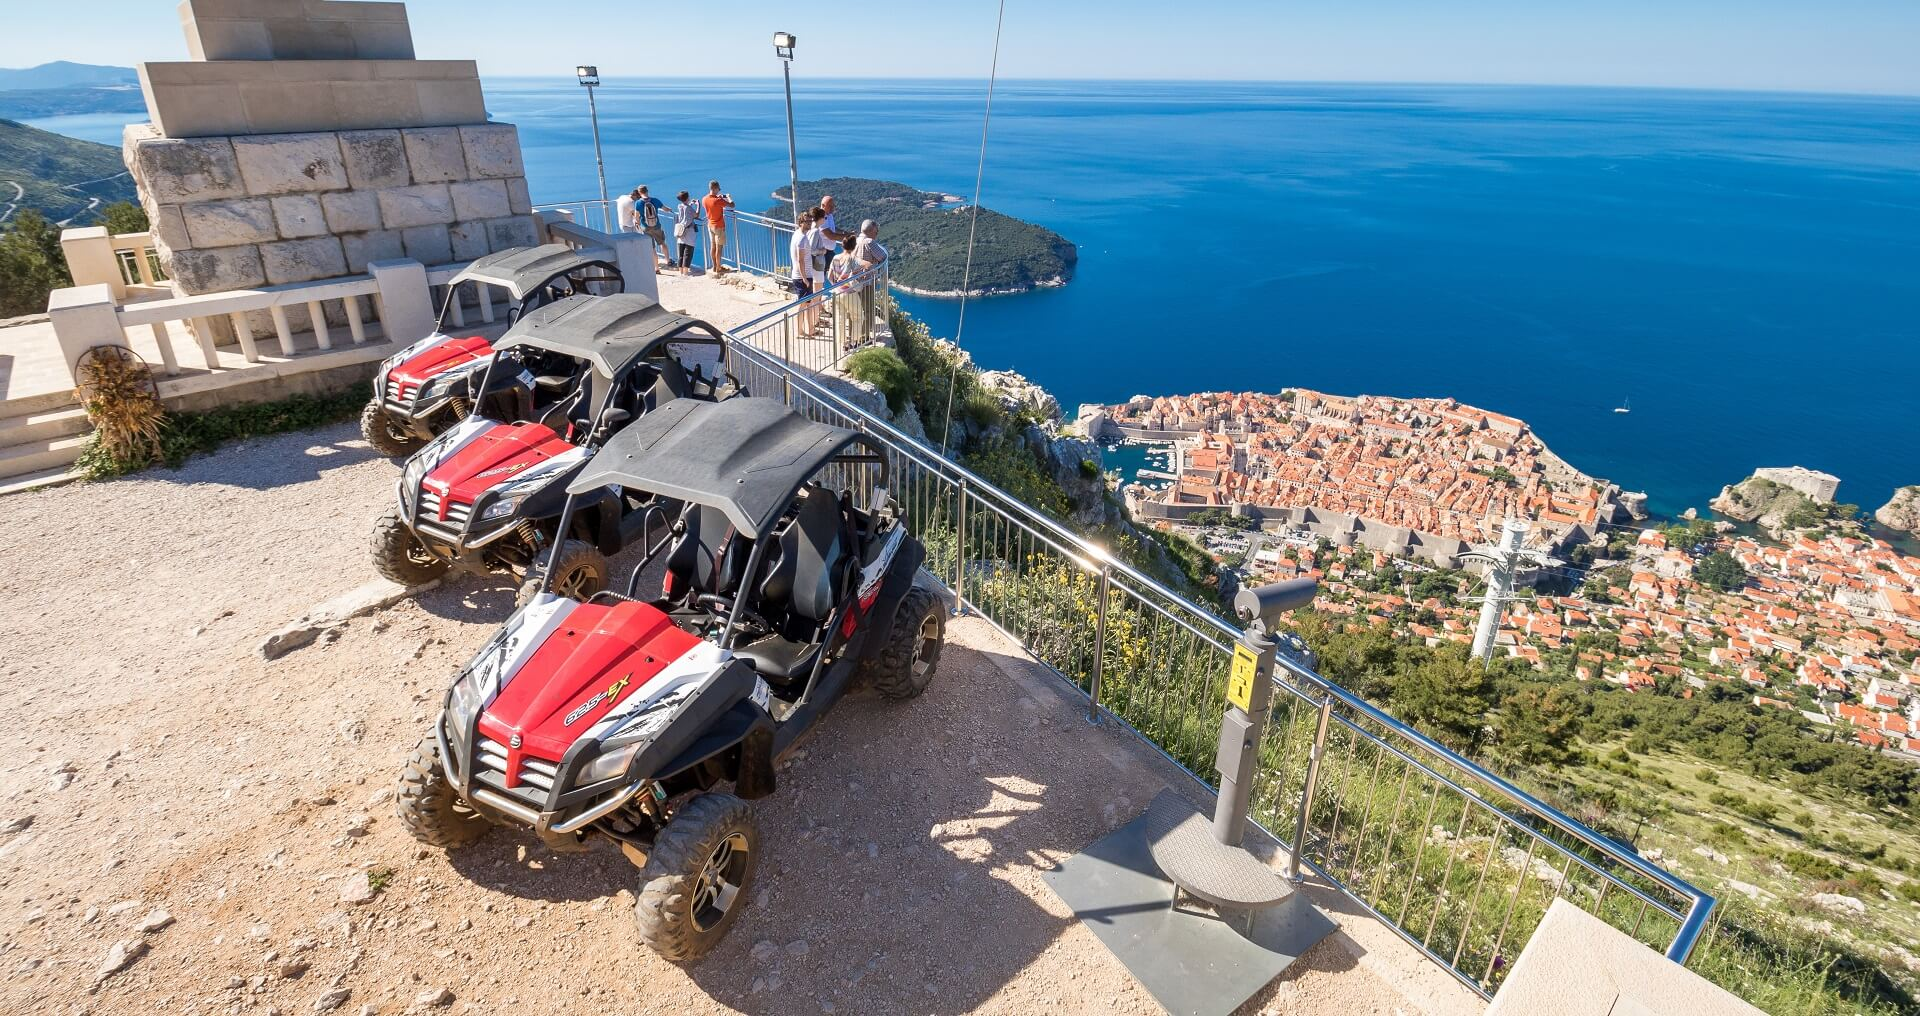 Best View of Dubrovnik